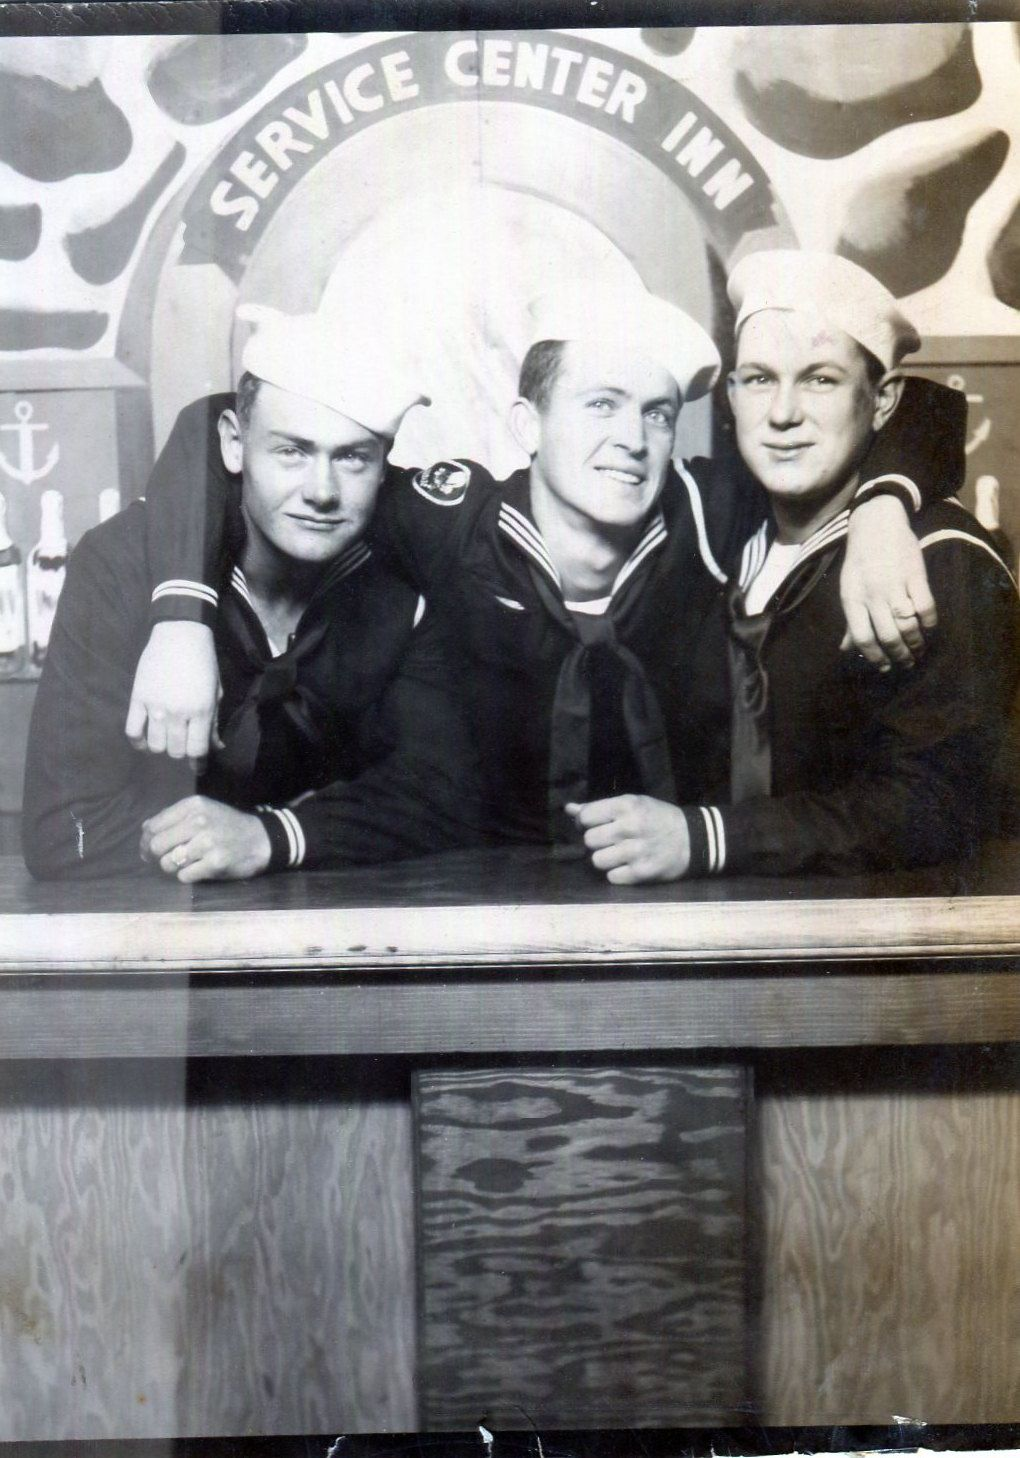 Vintage Photo..Sailors Night Out 1940's, Original Arcade Photo, Old Photo Snapshot, Vernacular Photography, American Social History Photo by iloveyoumorephotos on Etsy